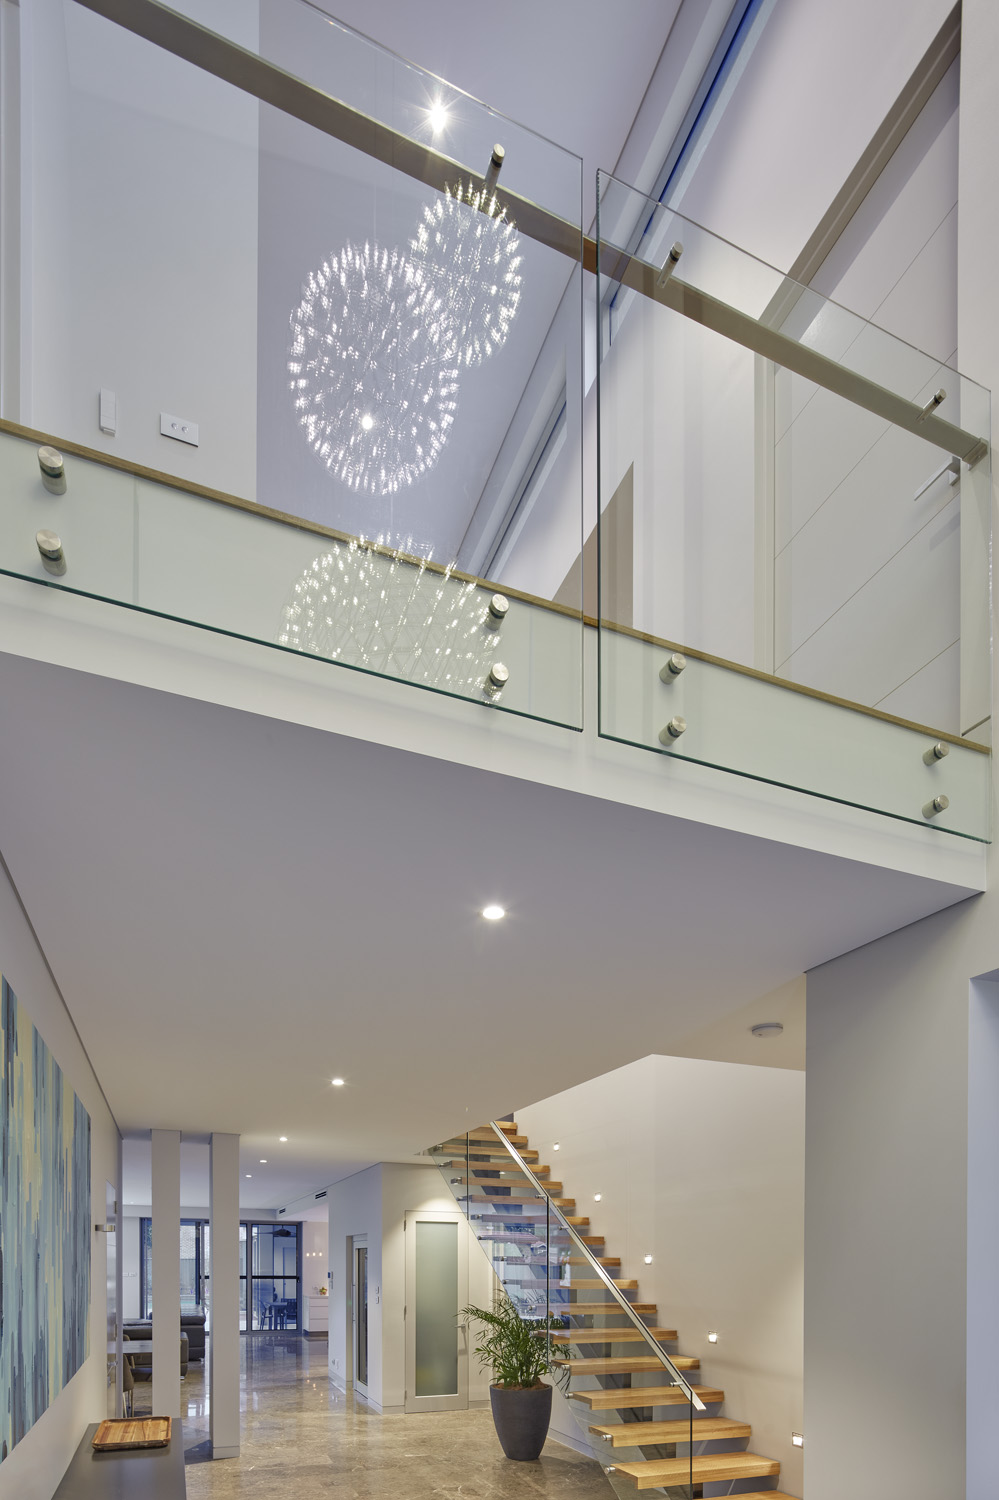 The floating timber staircase is a standout design feature of the home